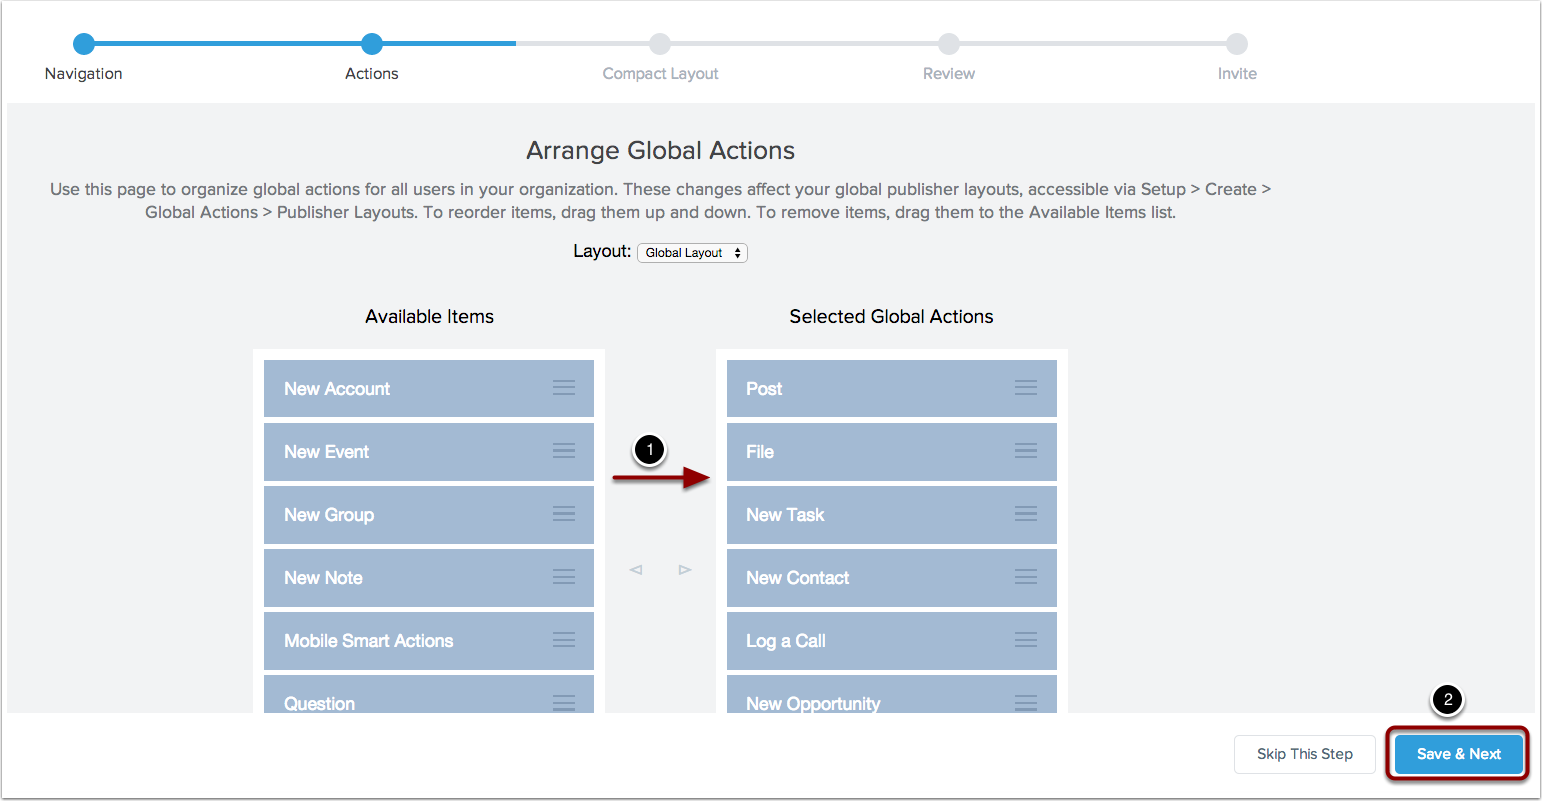 Arrange your global actions